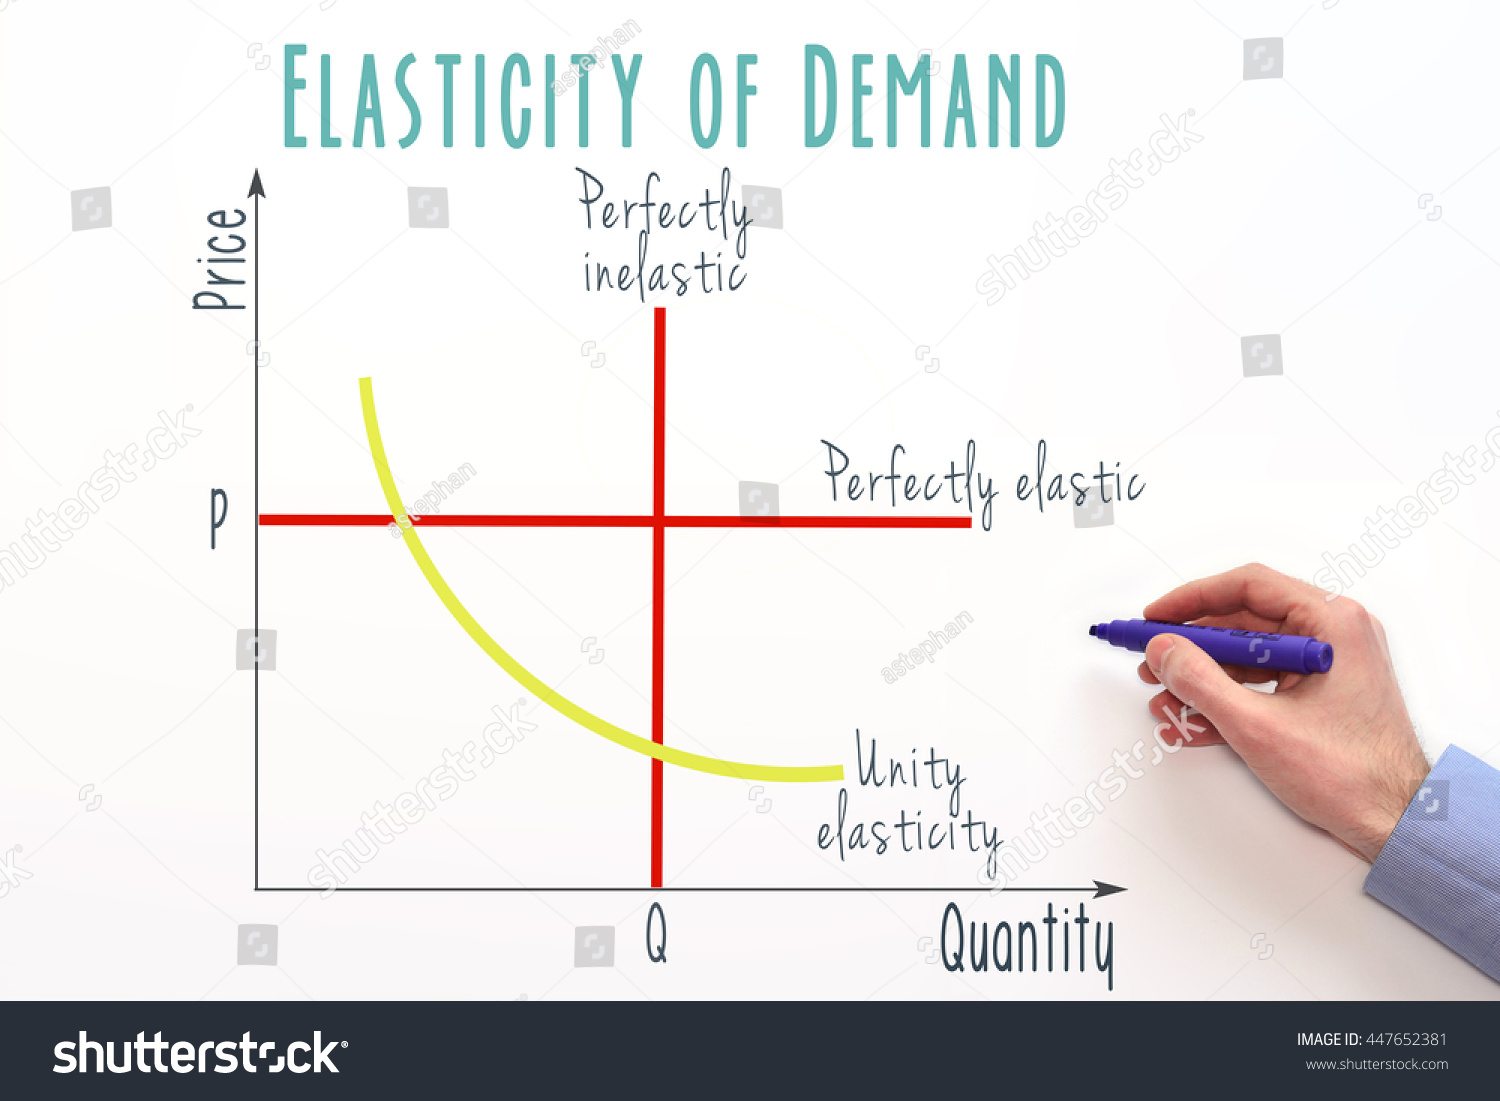 what is the concept of elasticity